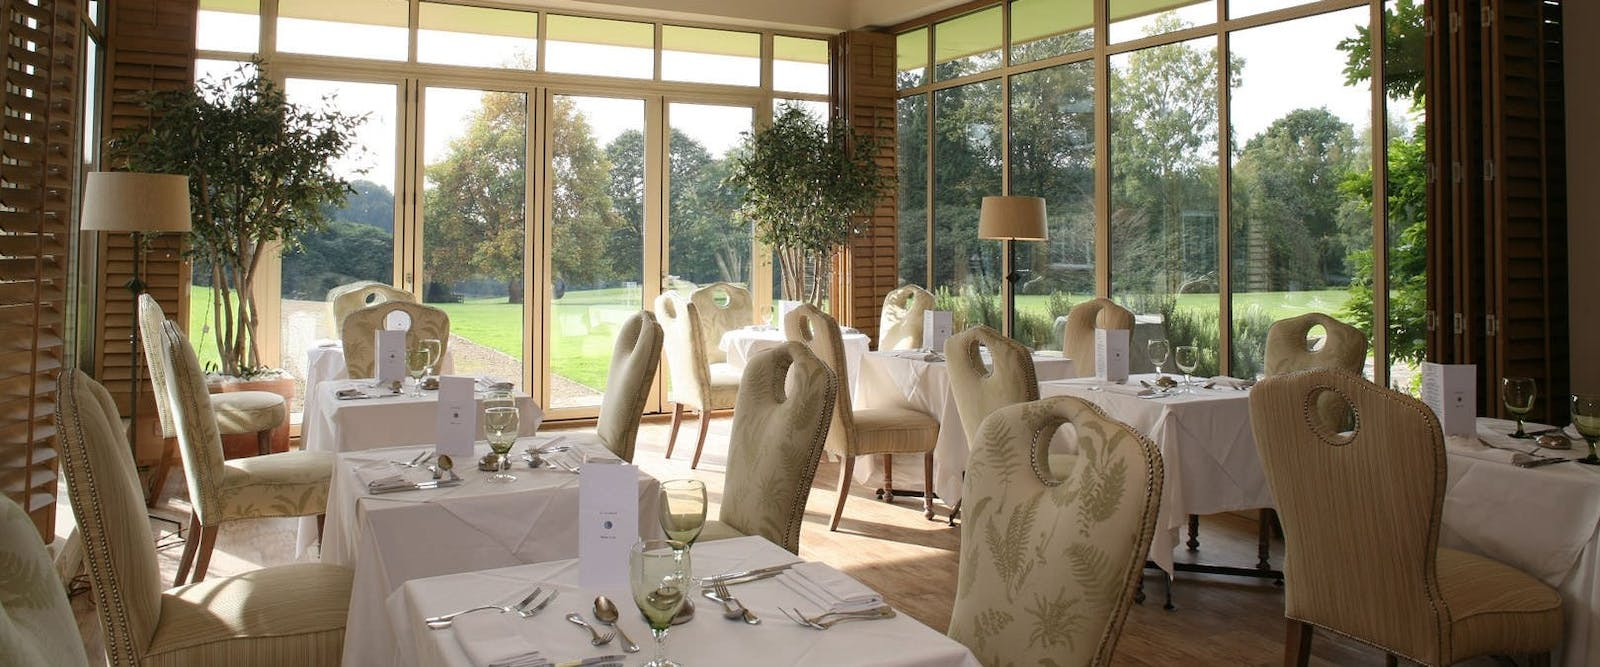 Dining Area at Grayshot Spa, Surrey, England